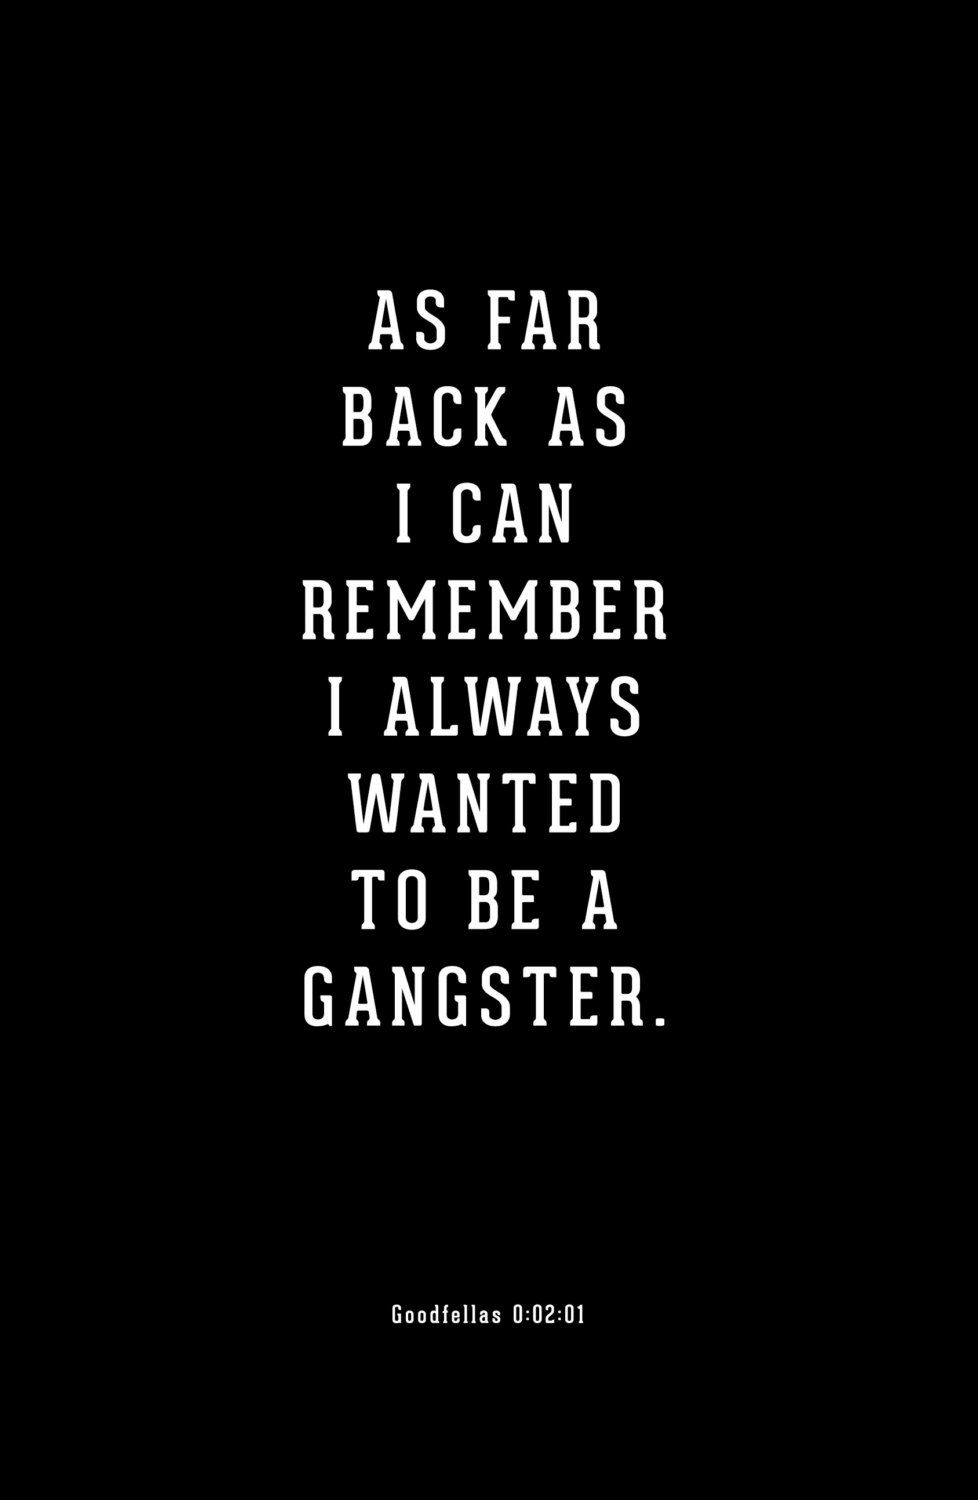 Goodfellas Poster I Always Wanted To Be A Gangster Etsy Gangsta Quotes Goodfellas Goodfellas Quotes